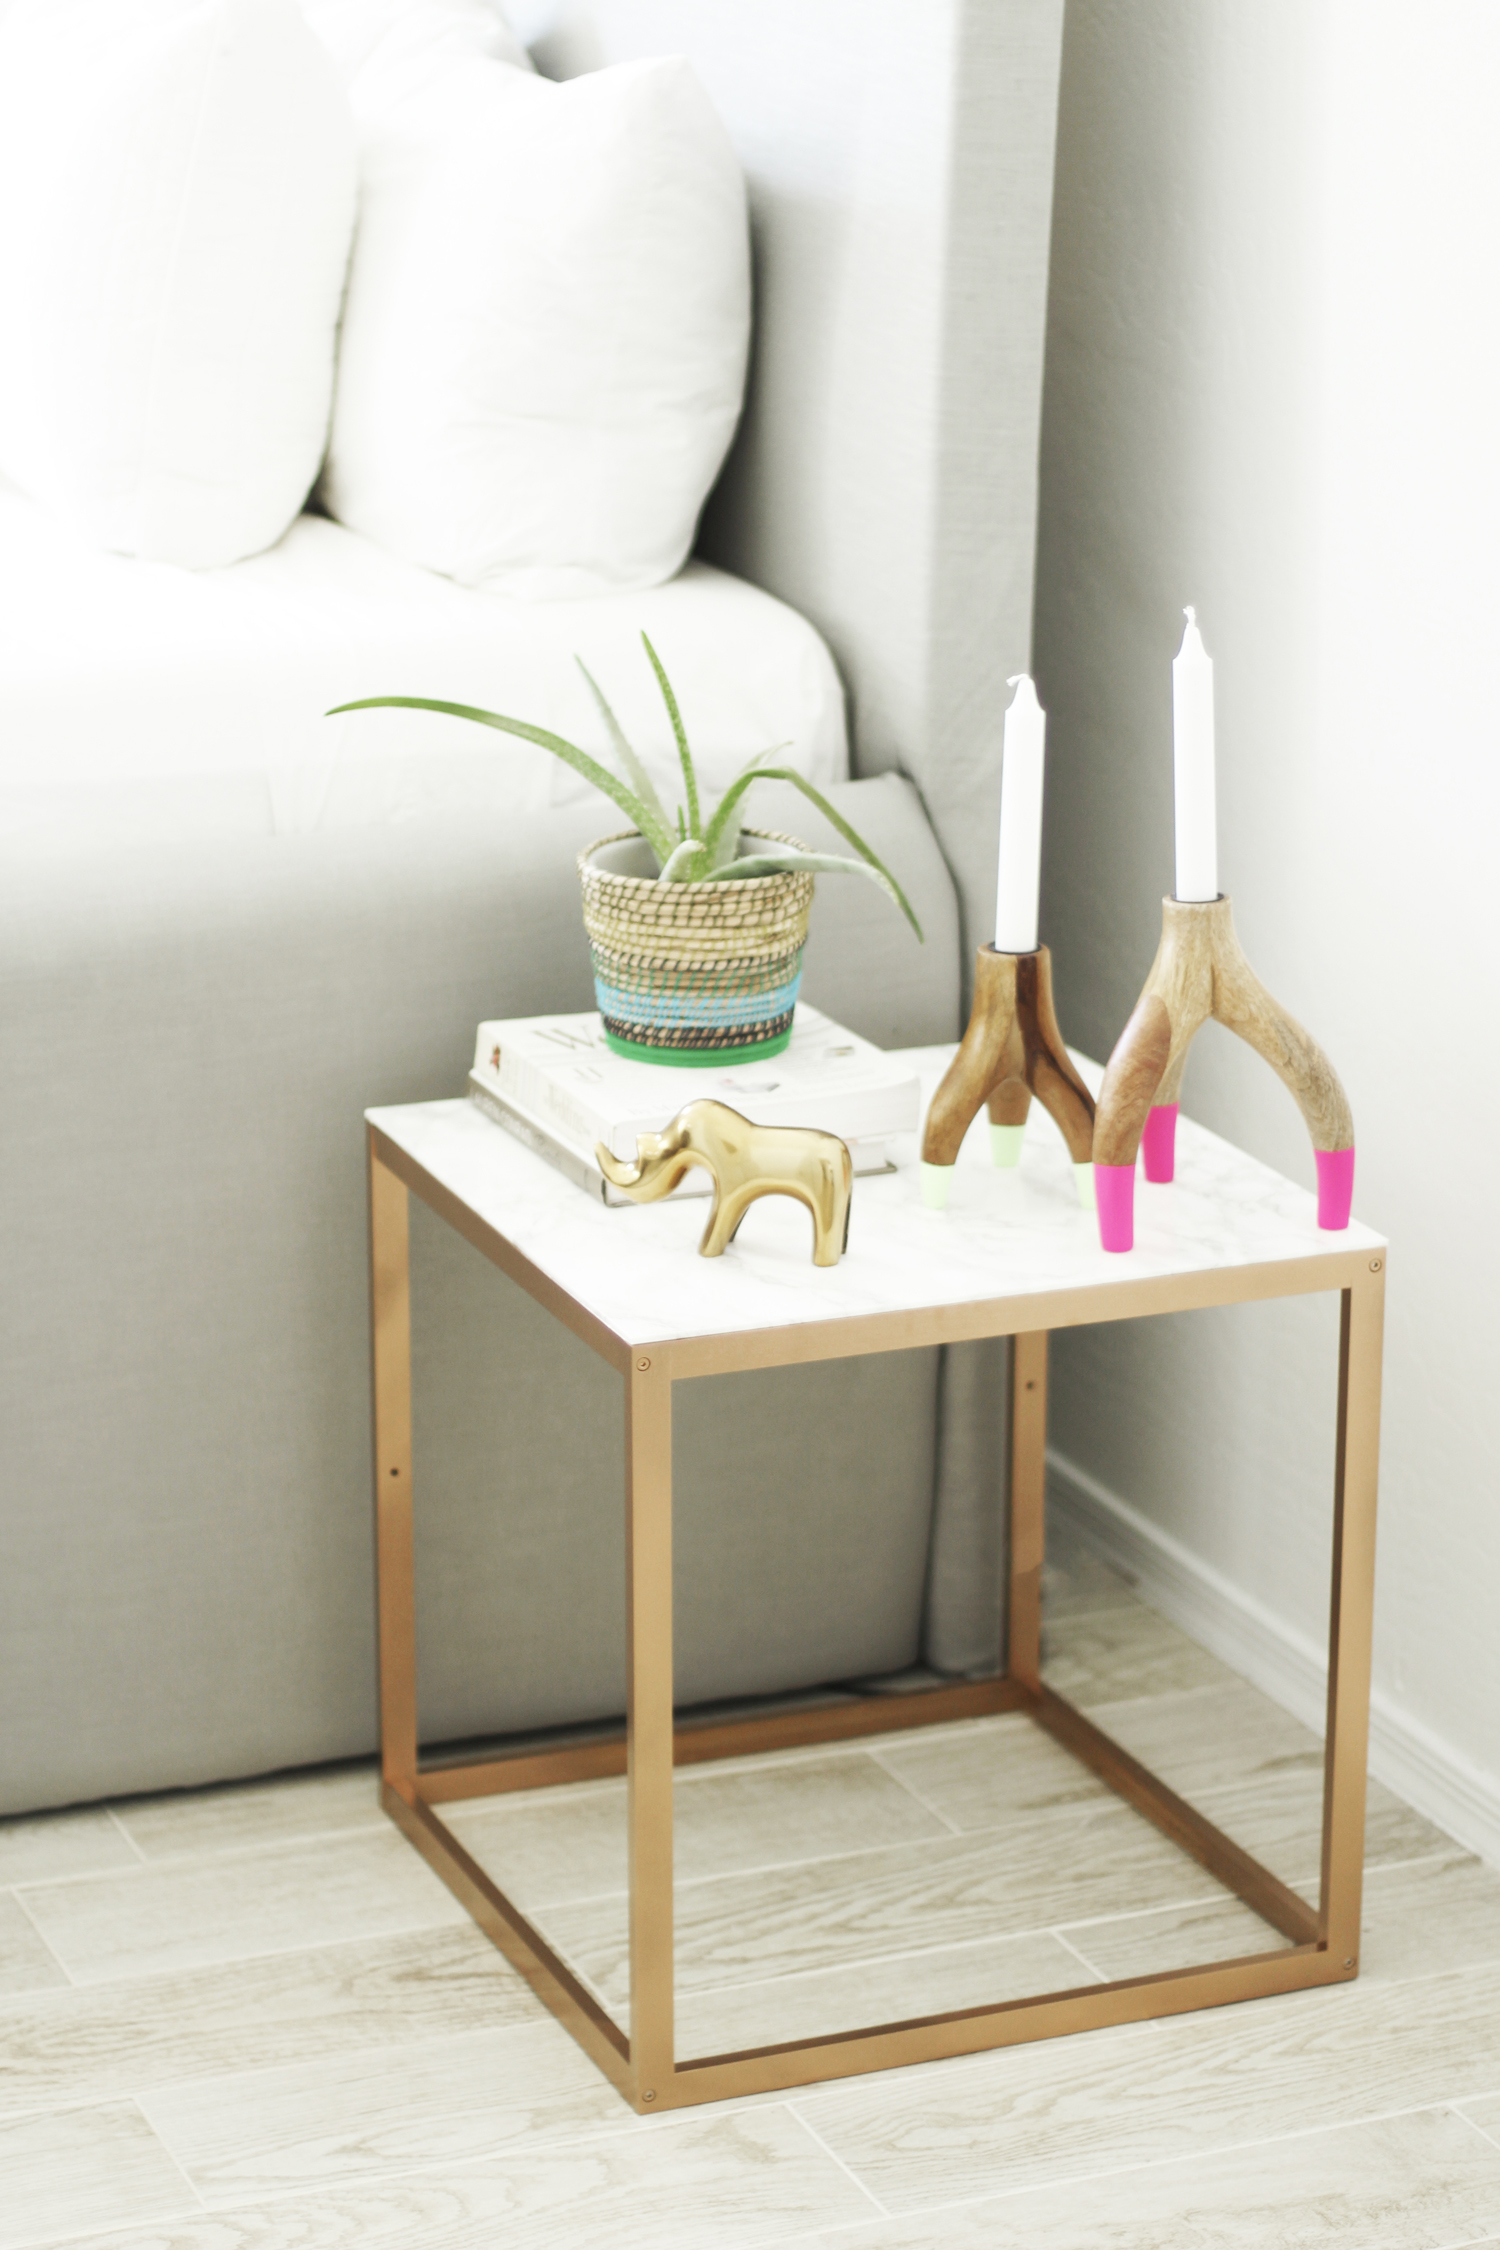 Ikea Hack Nightstand Four Ways Kristi Murphy Diy Blog